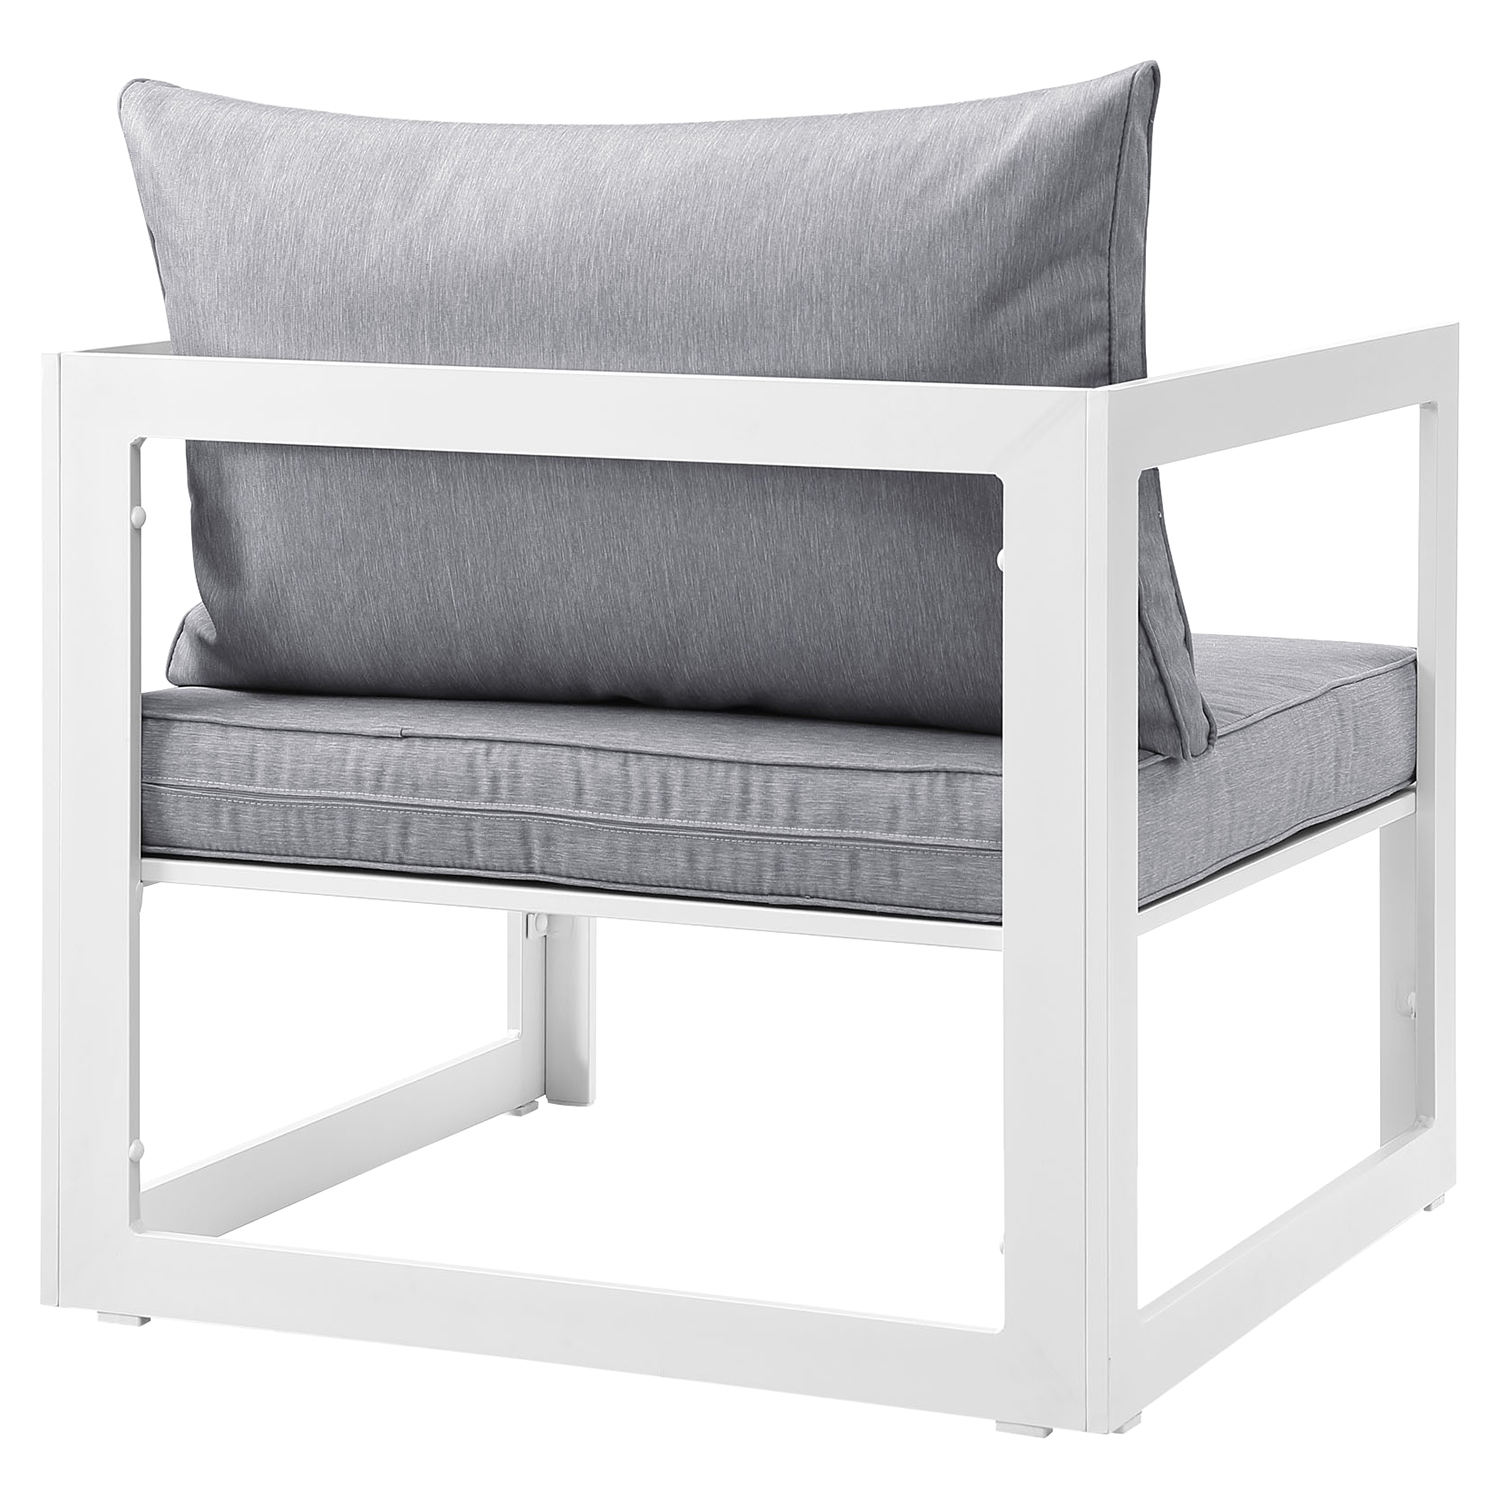 Fortuna Outdoor Patio Armchair - White Frame, Gray Cushion - EEI-1517-WHI-GRY